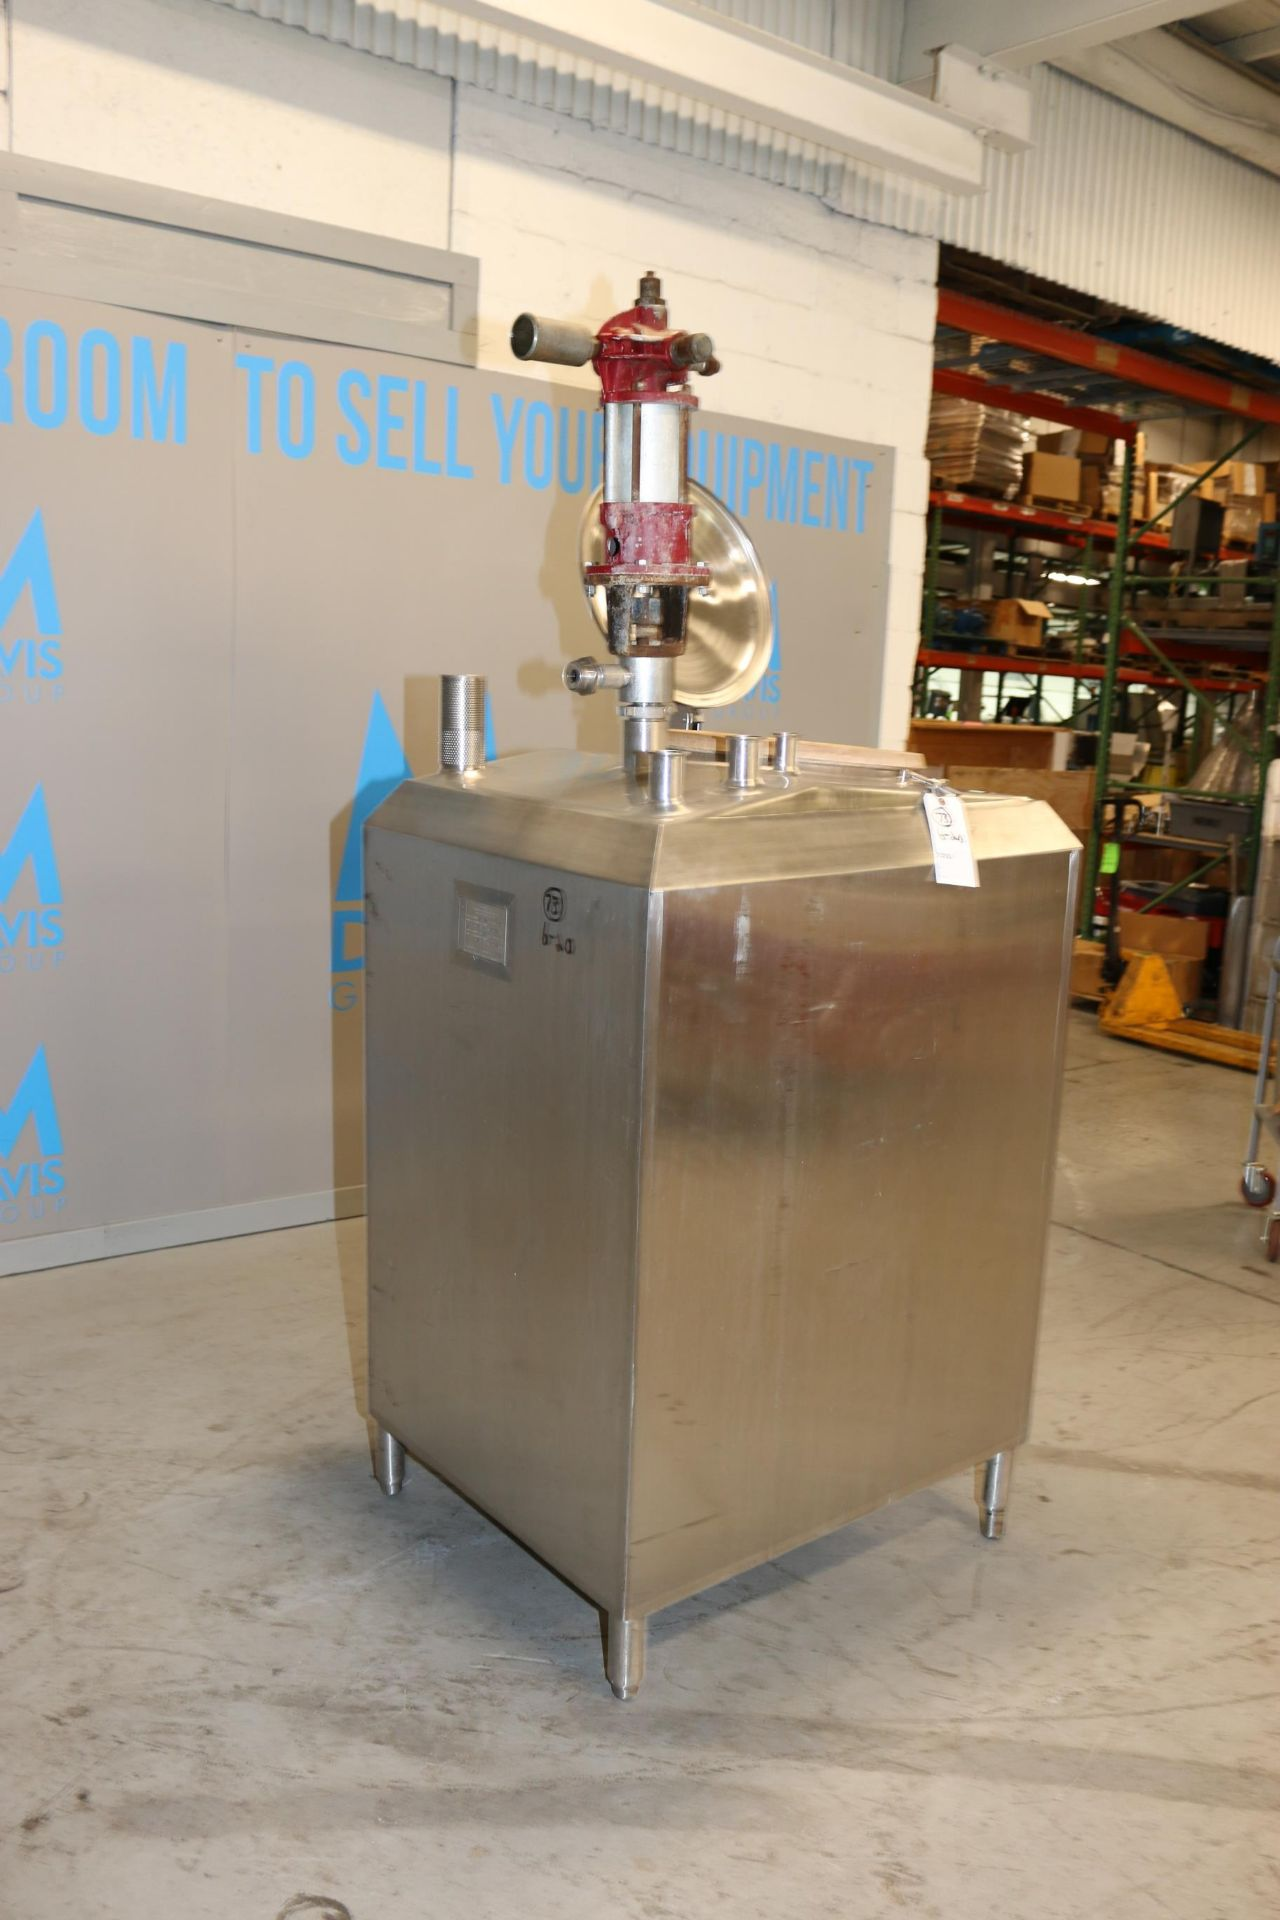 Lot 43 - Feldmeier Aprox. 180 Gals. S/S Vertical Jacketed Tank, Rectangular Design, S/N F-582-93, with Top